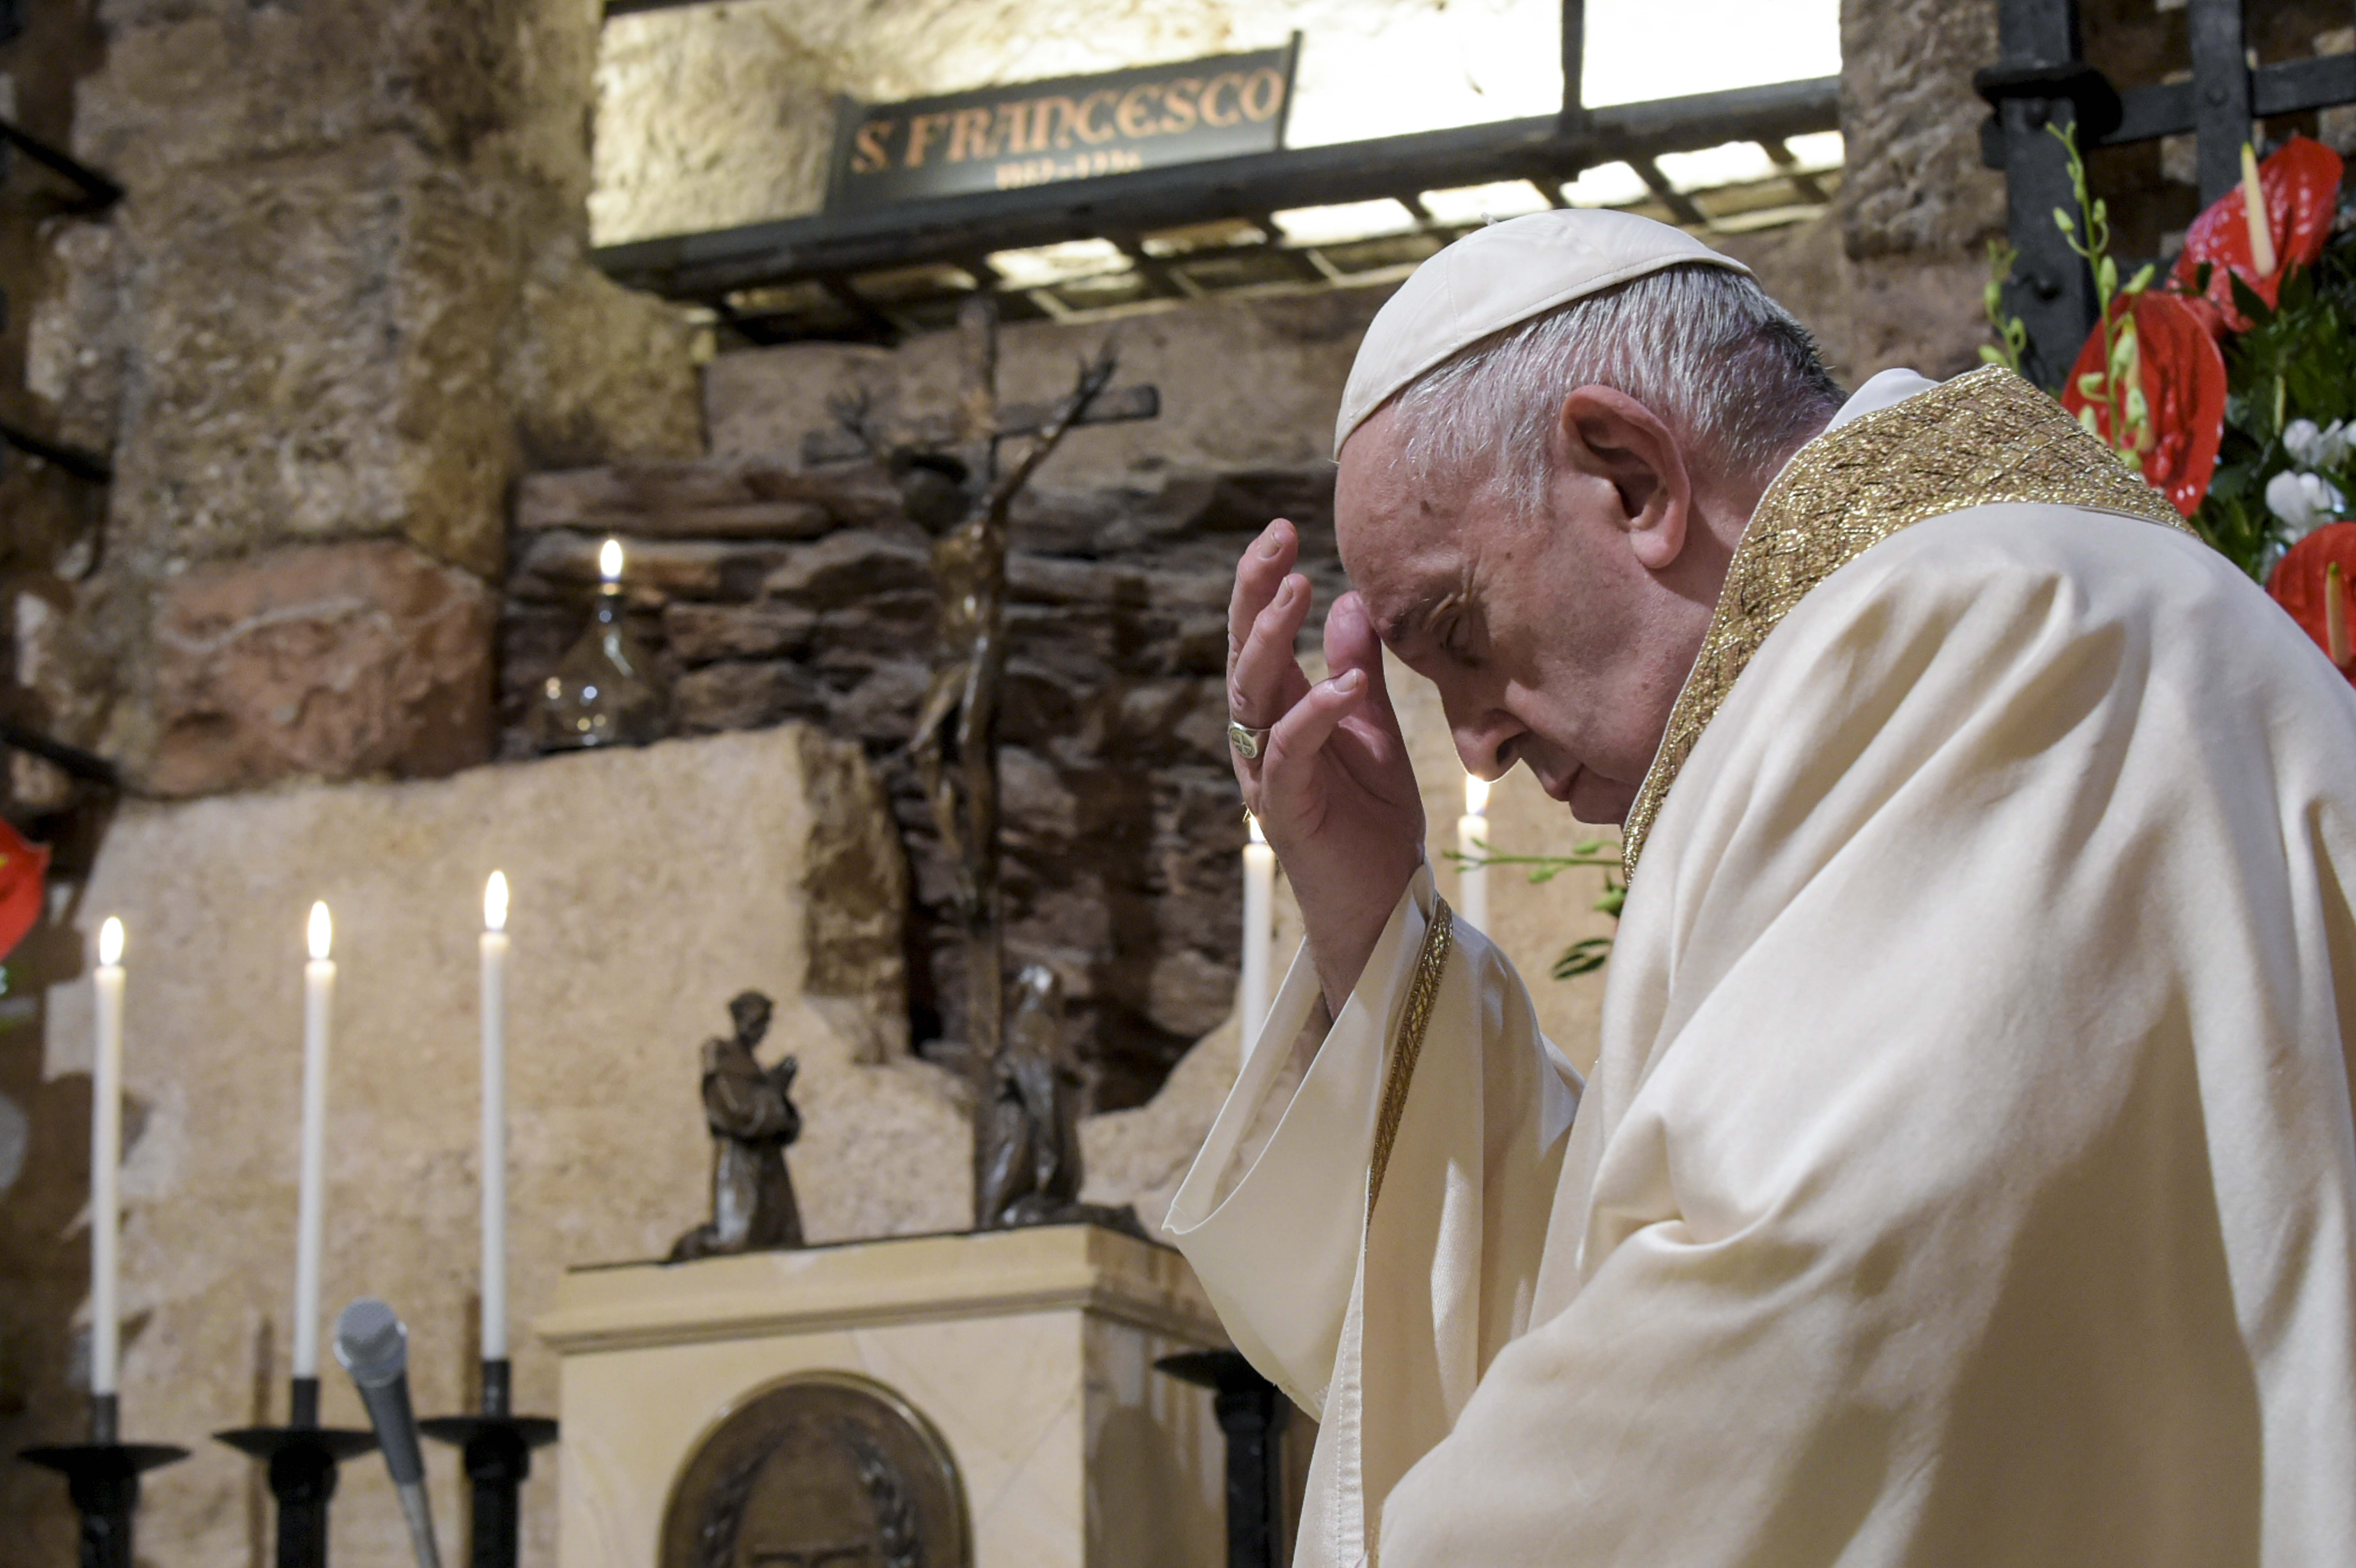 Pope Francis celebrates Mass in the crypt of the Basilica of St. Francis, in Assisi, Italy, Oct. 3, 2020.